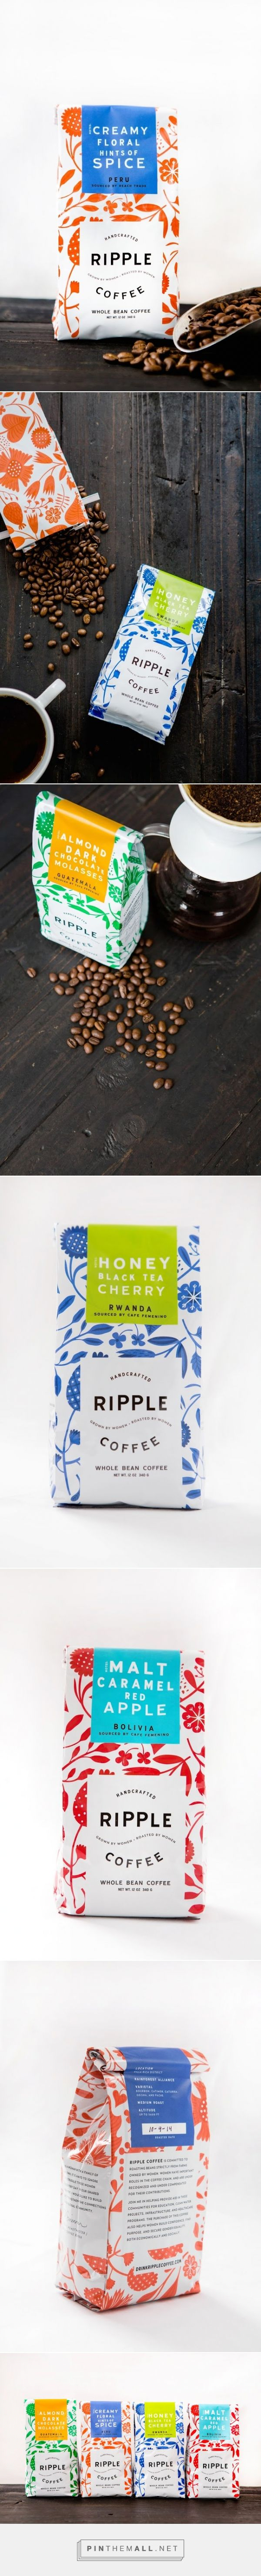 Ripple Coffee by Design Womb. Pin curated by SFields99. #packaging